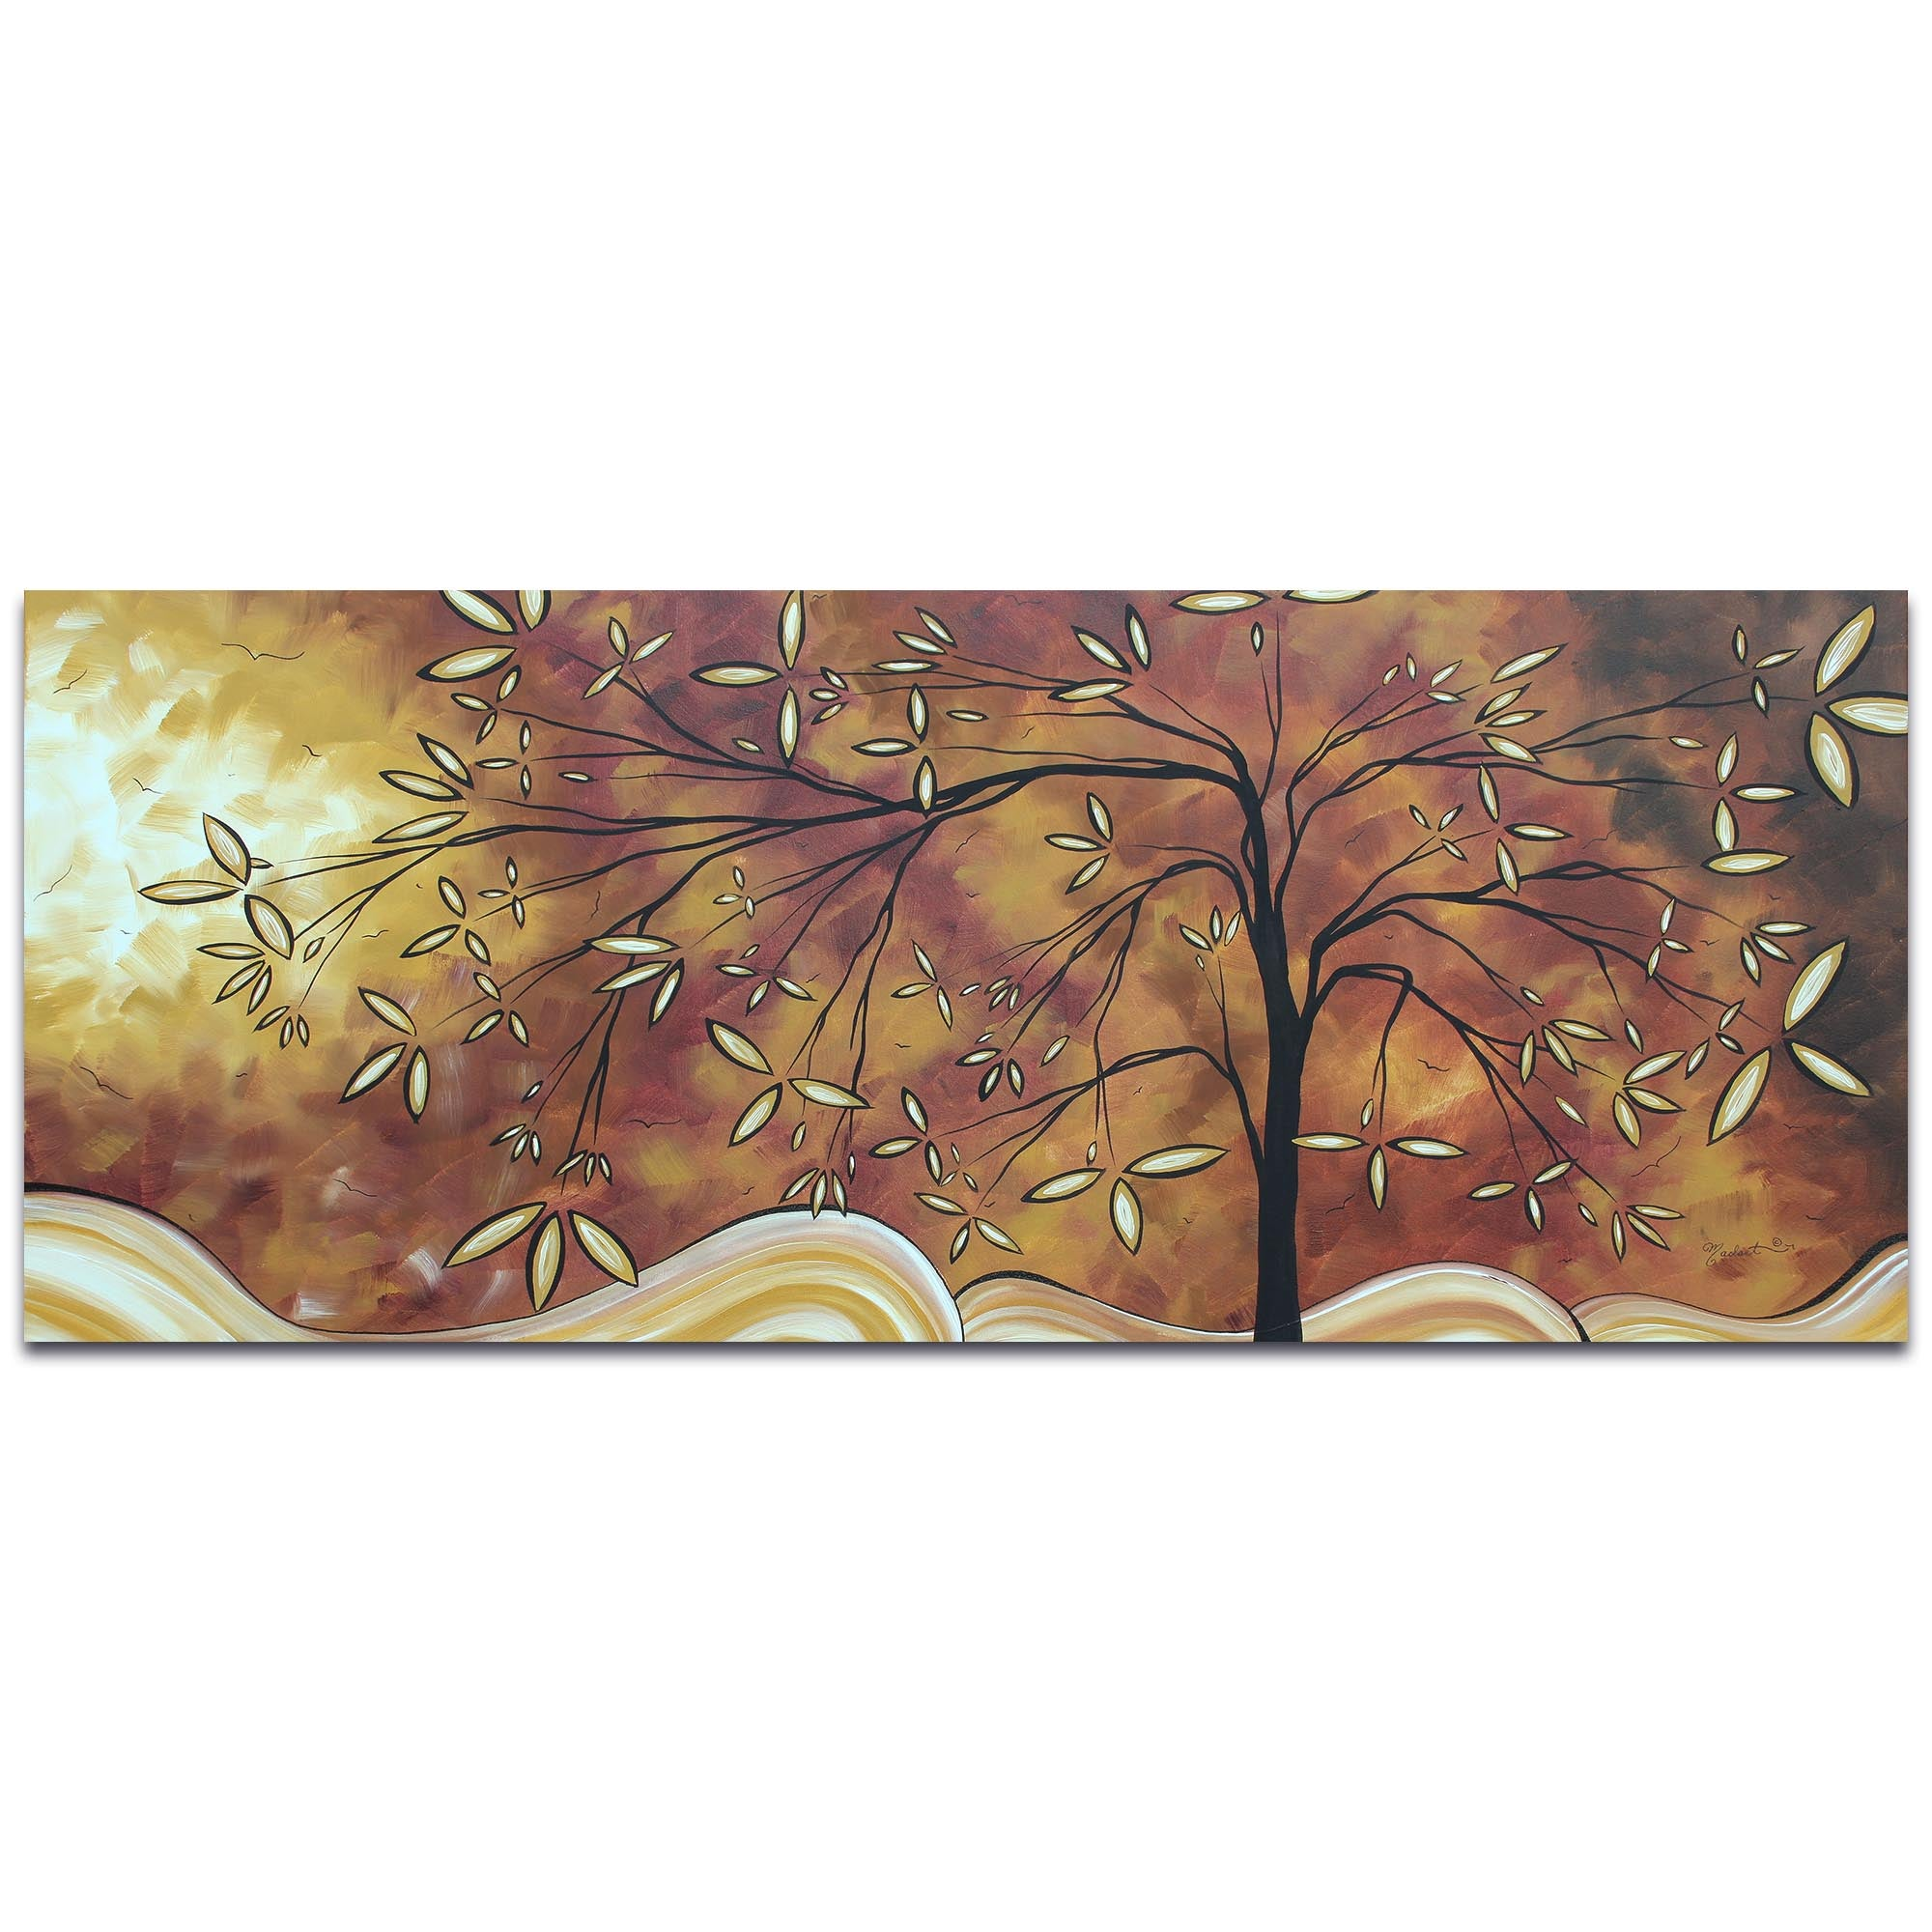 The Wishing Tree by Megan Duncanson - Landscape Painting on Metal or Acrylic